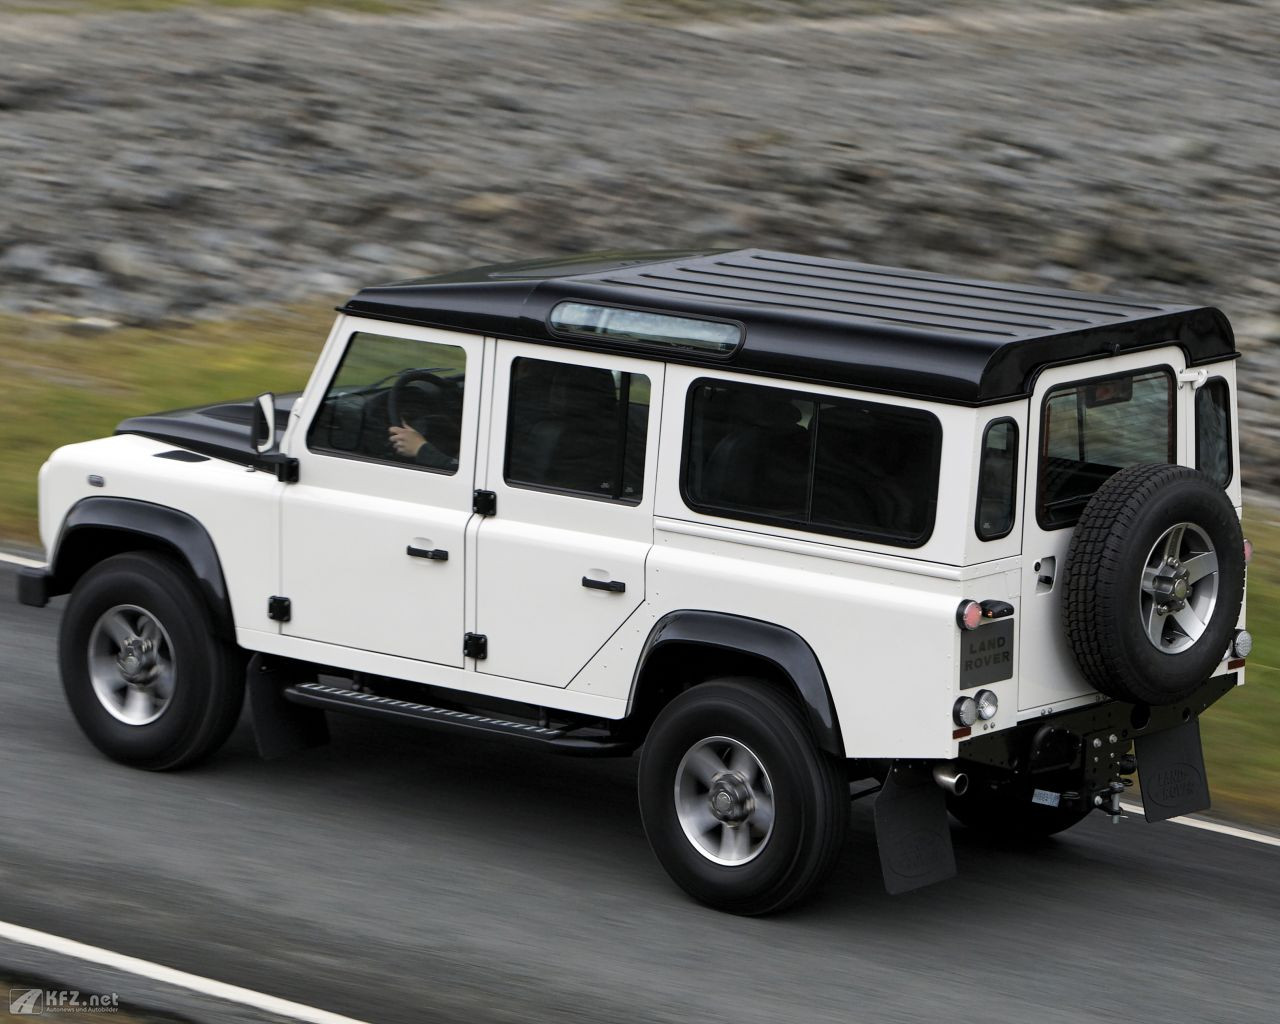 land-rover-defender-1280x1024-7